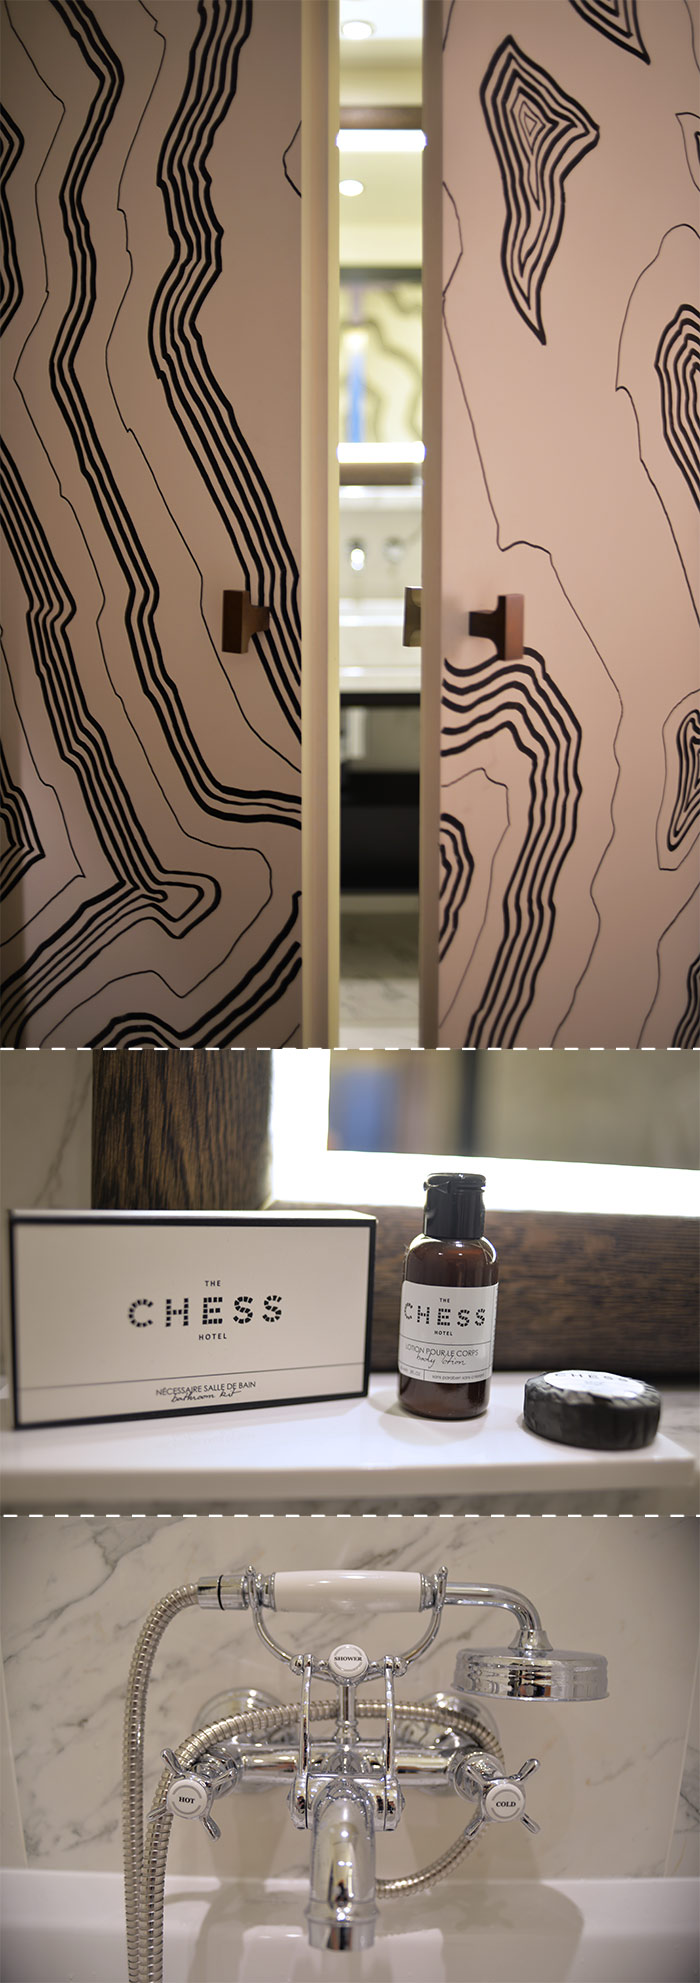 chess hotel bathroom